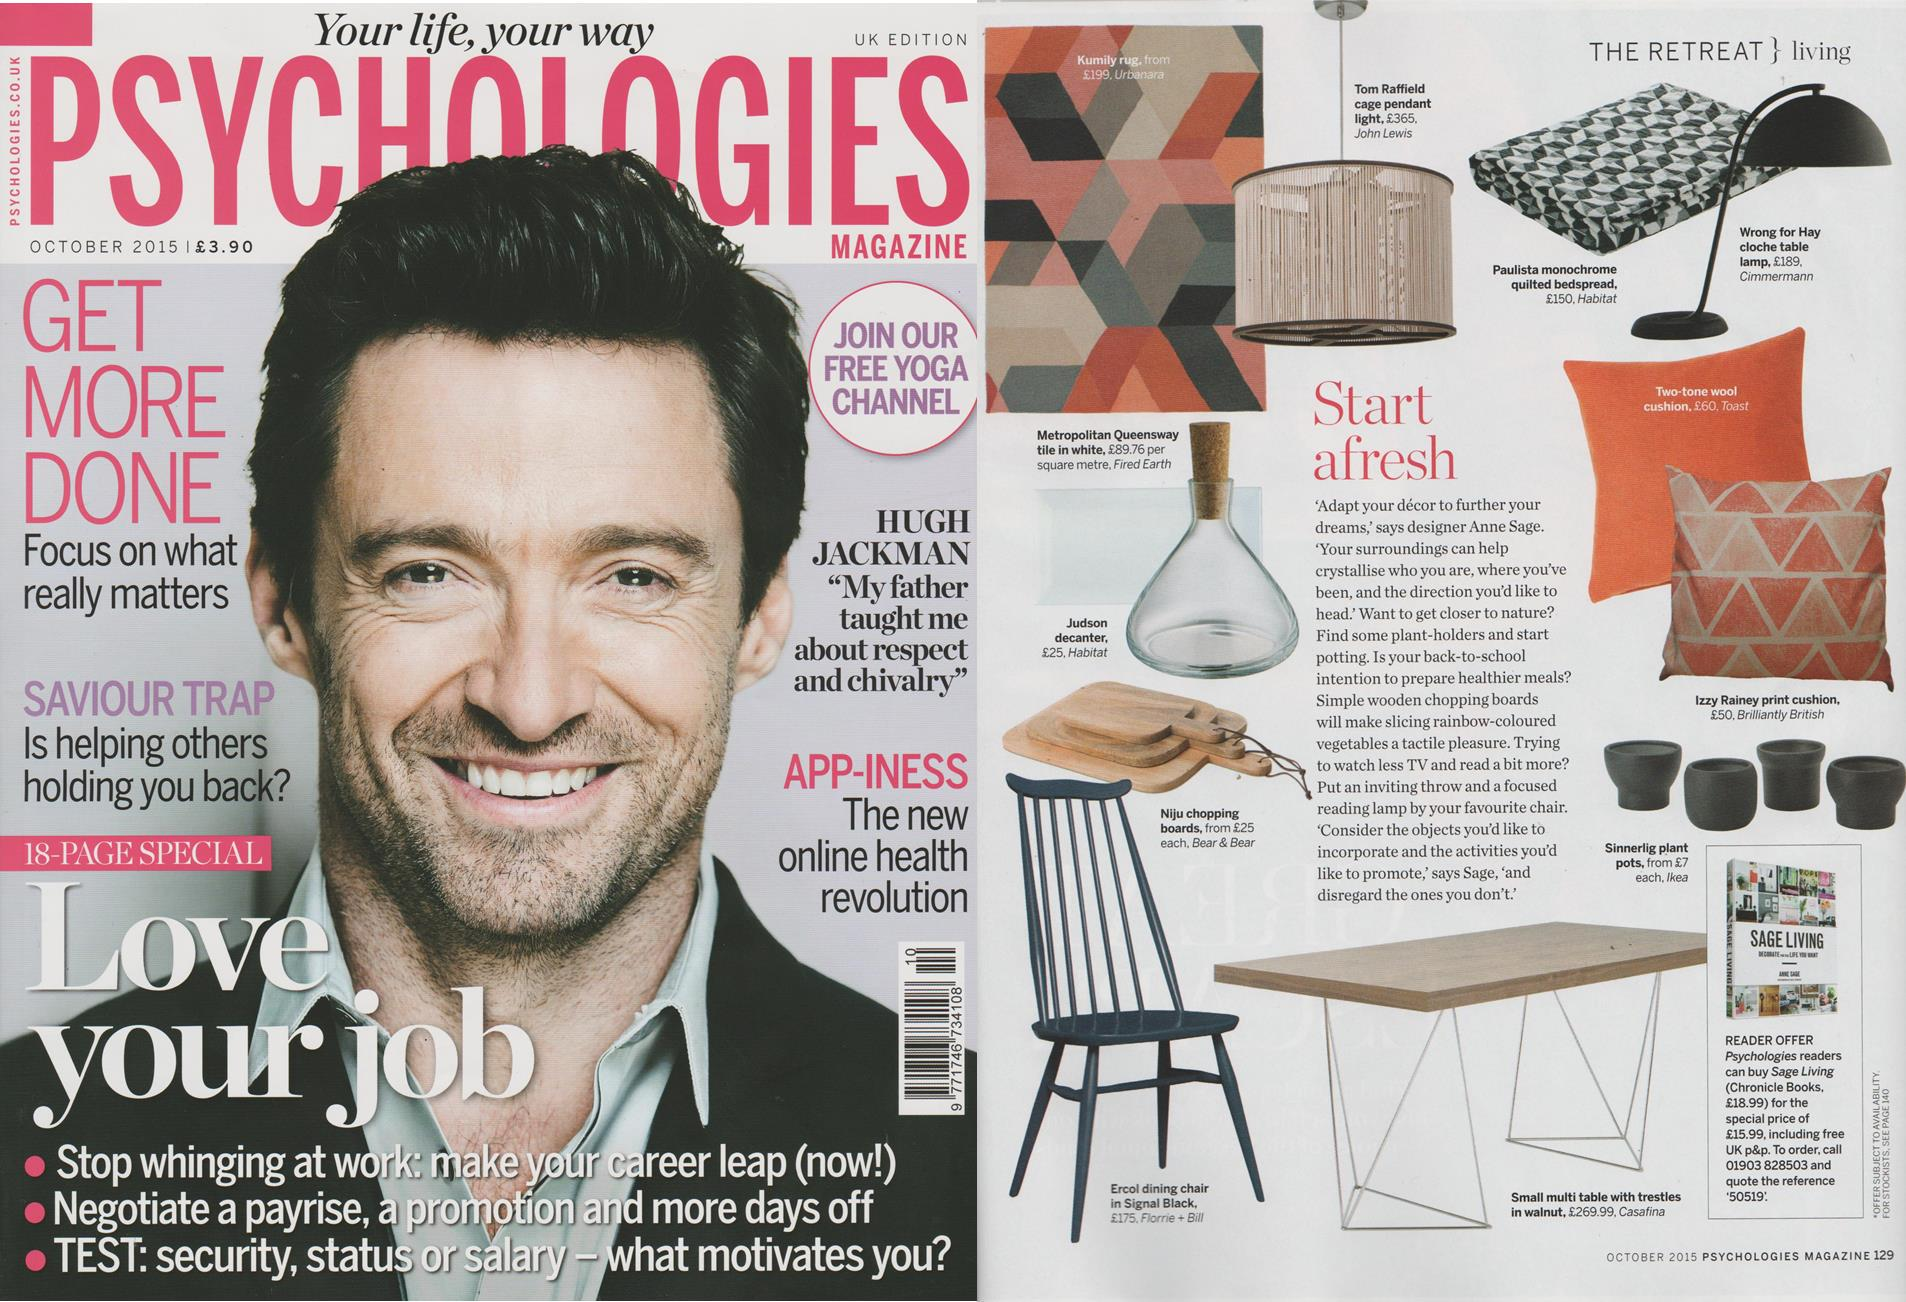 RT @Peachy_PR: Saying 'Hi' to @florrieandbill's lush Ercol chair in the latest @PsychologiesMag - we love the theme on this page! http://t.…